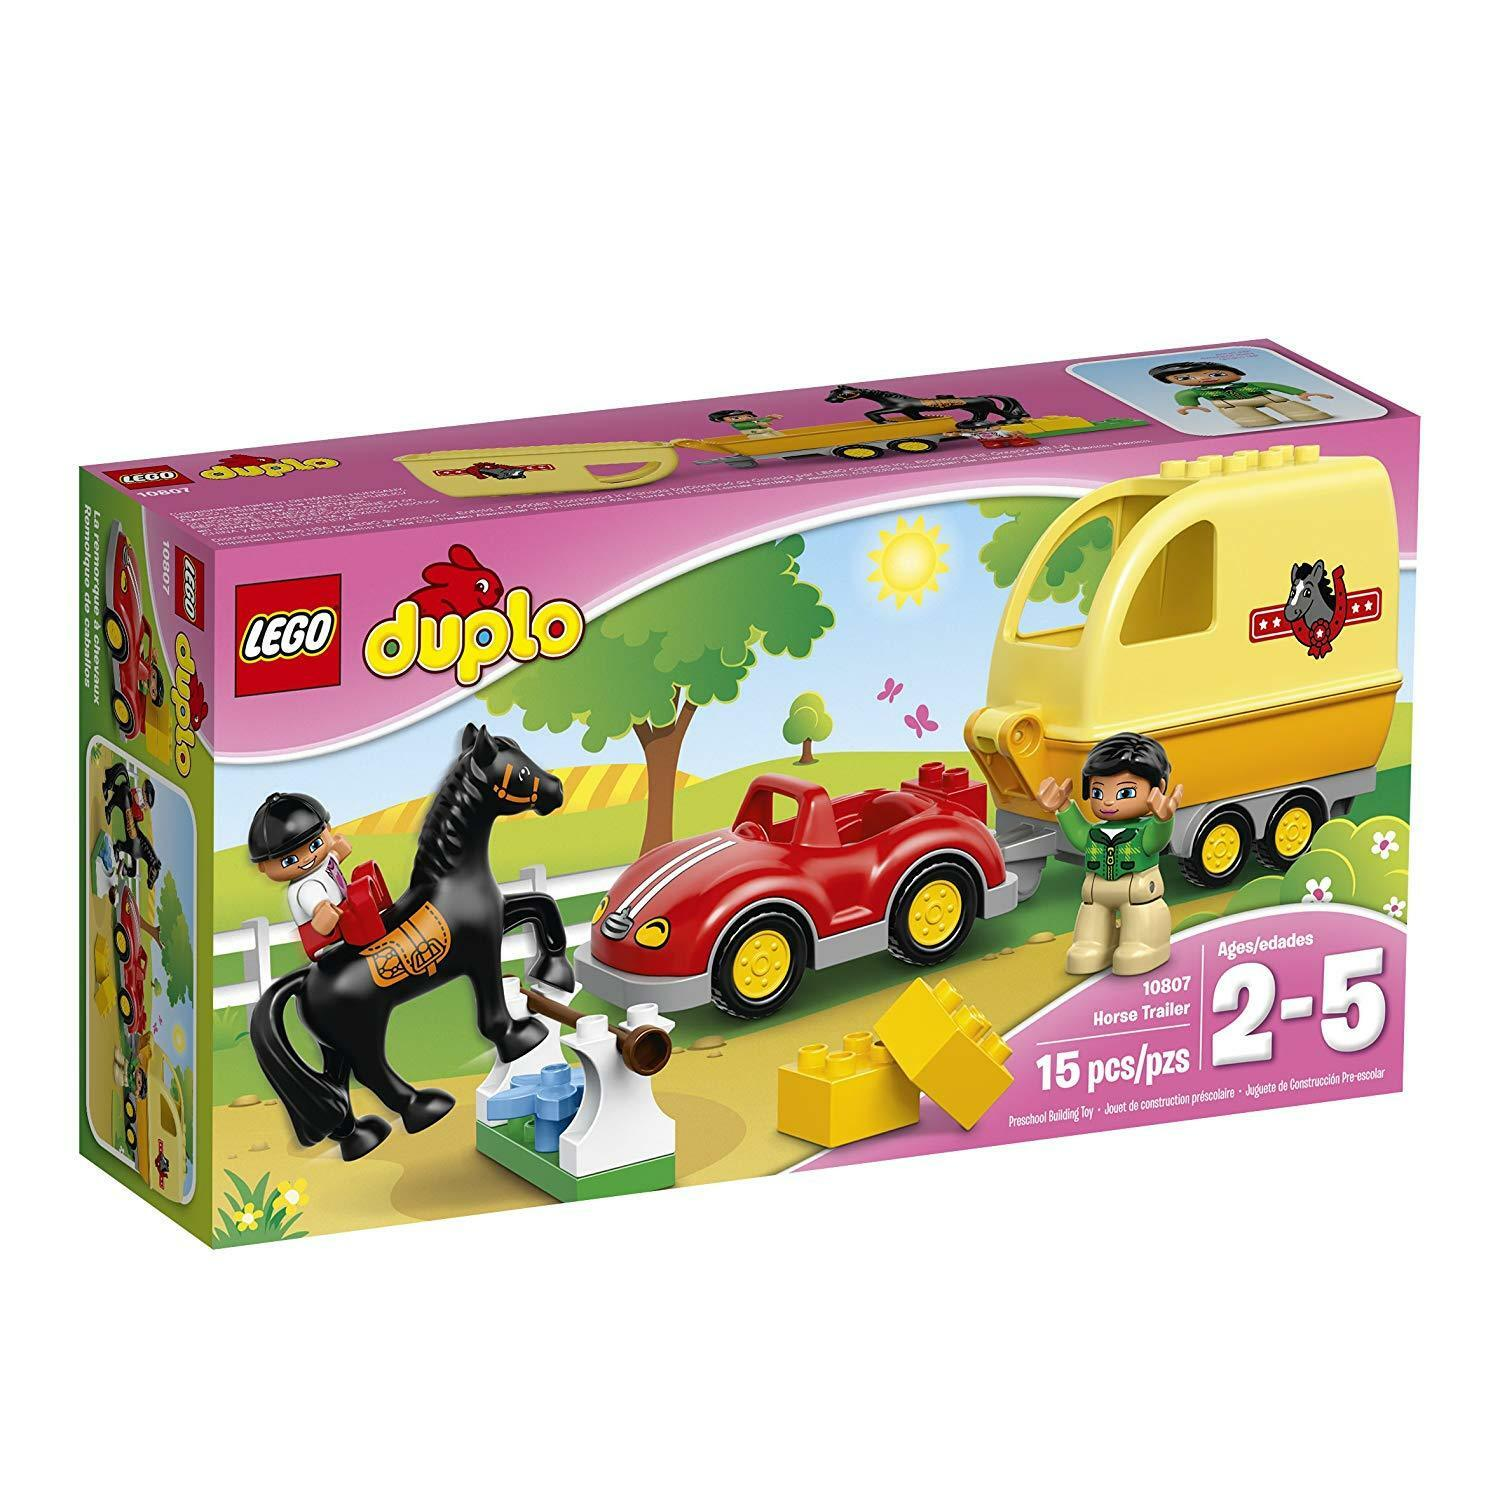 LEGO 10807 - Duplo, Town  Recreation - Horse  Trailer - 2016  vendita outlet